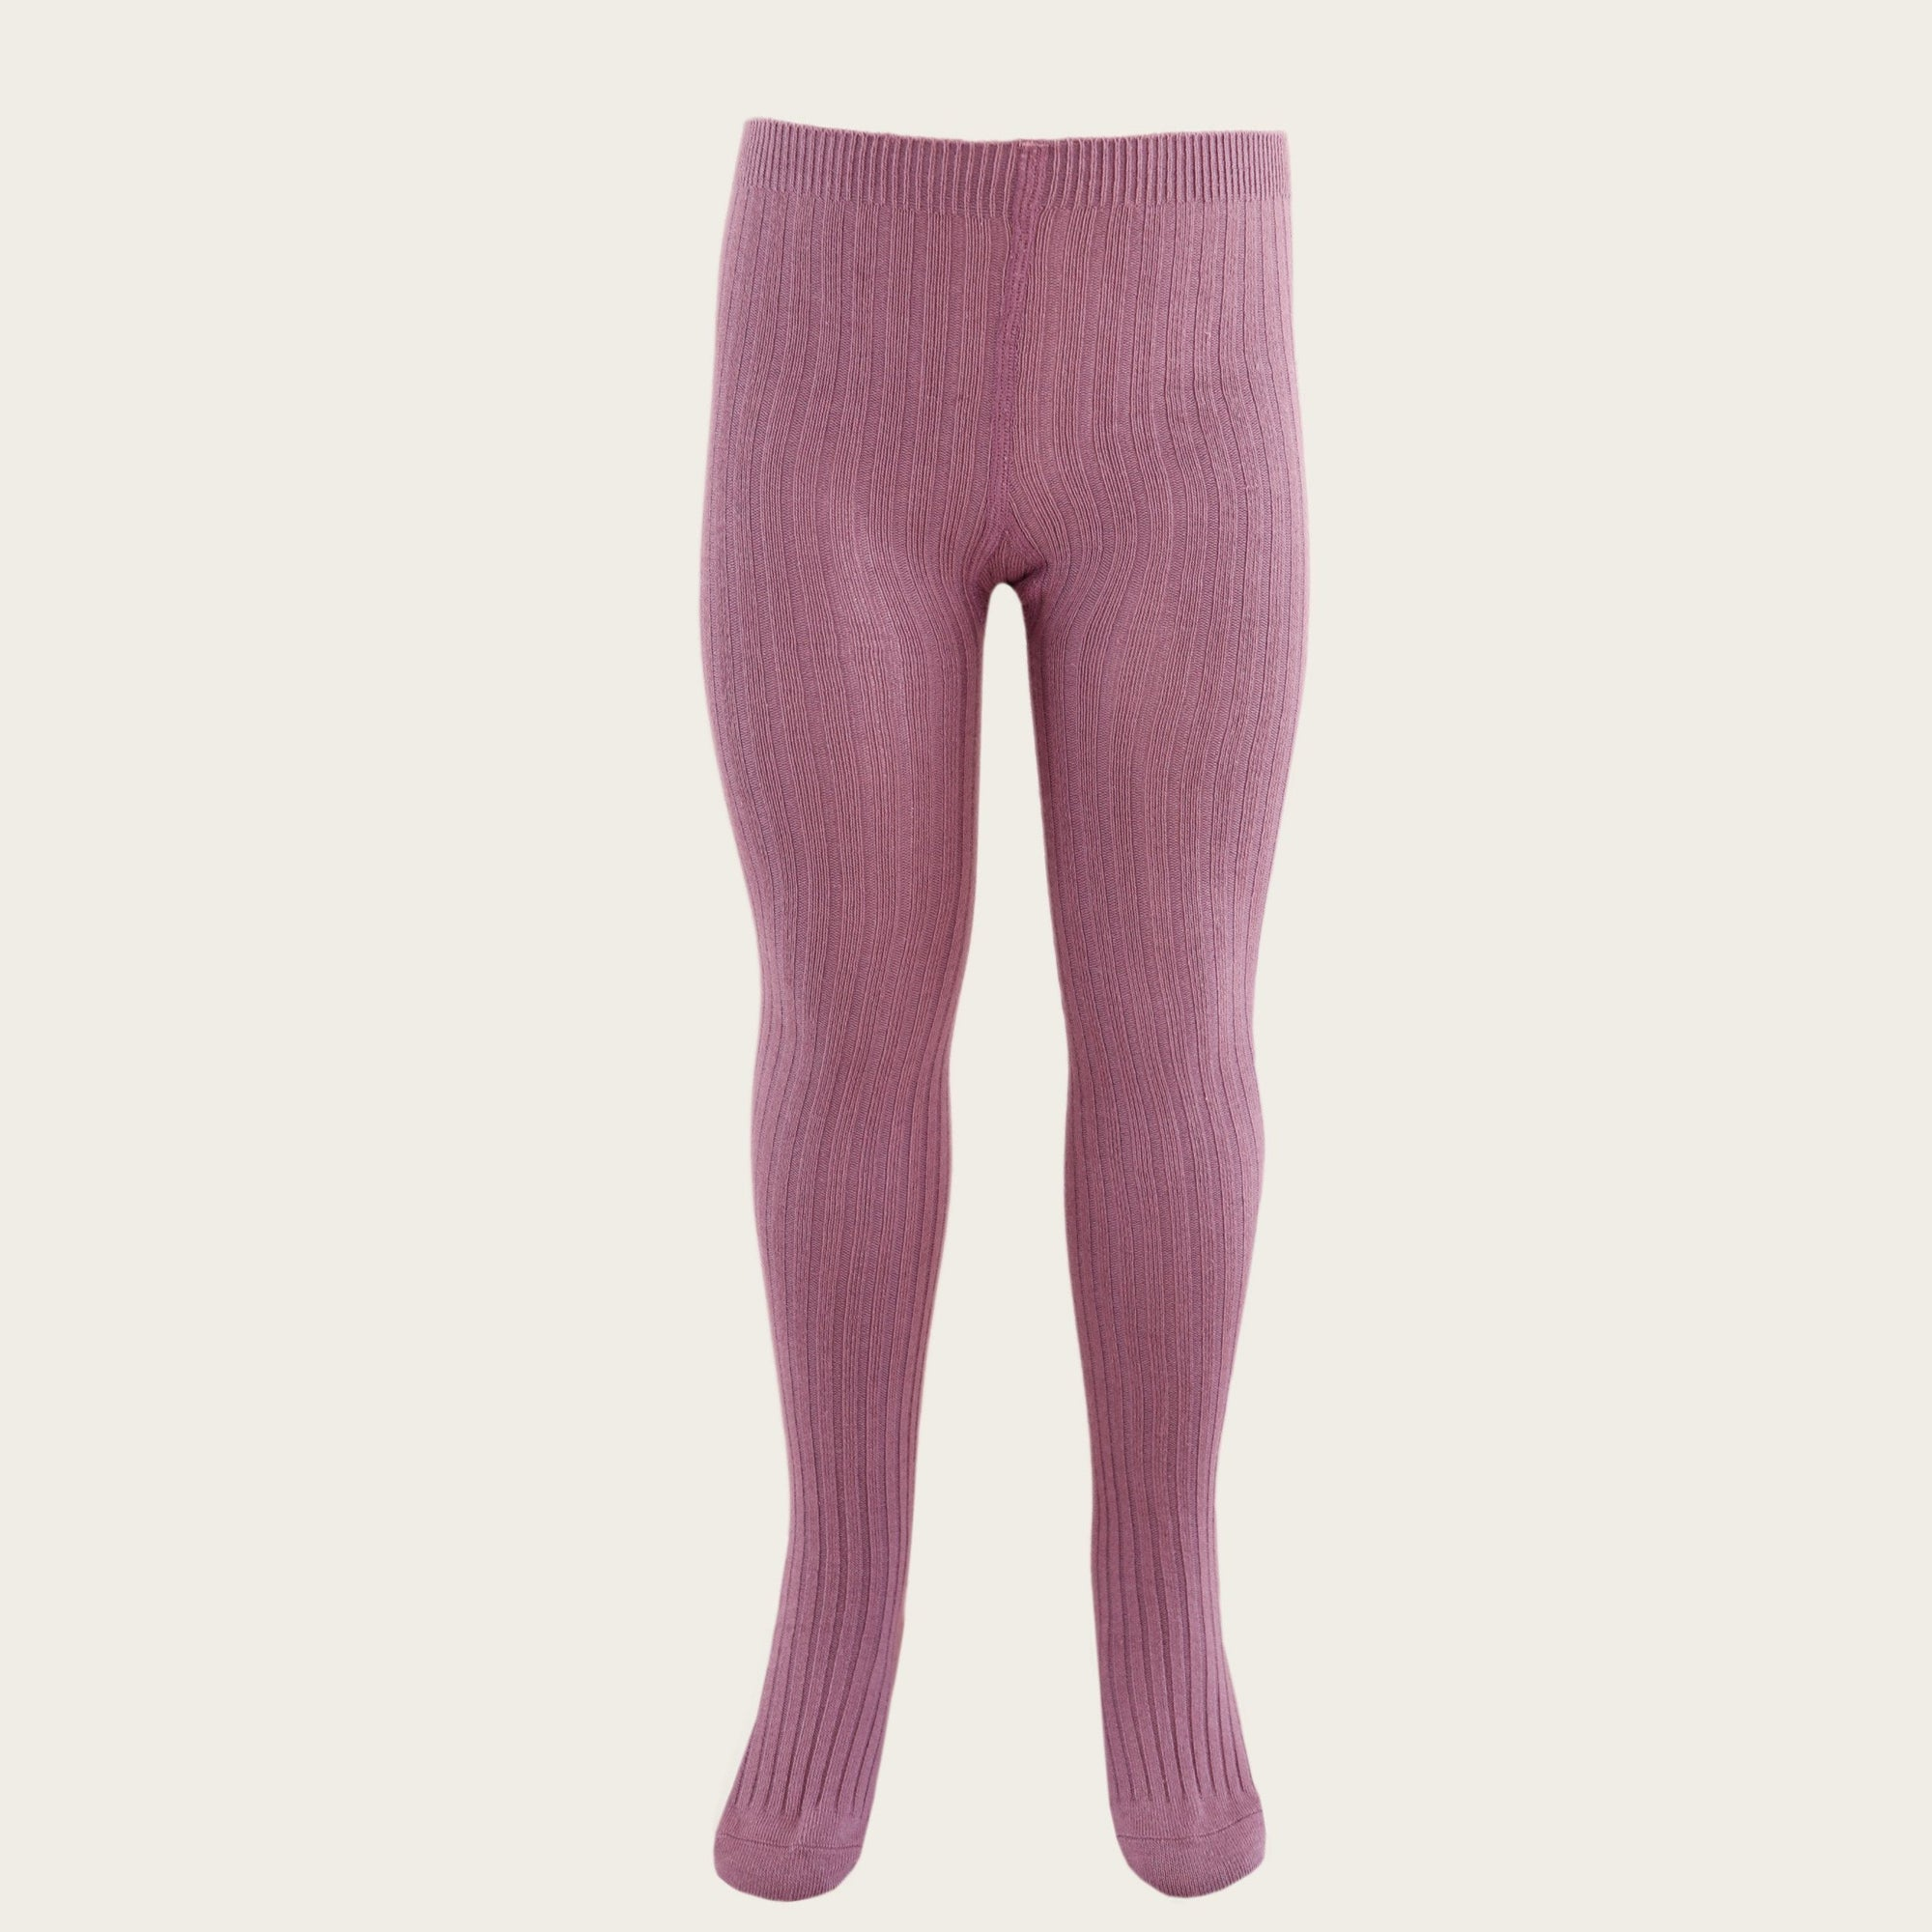 Ribbed Tights (Plum)